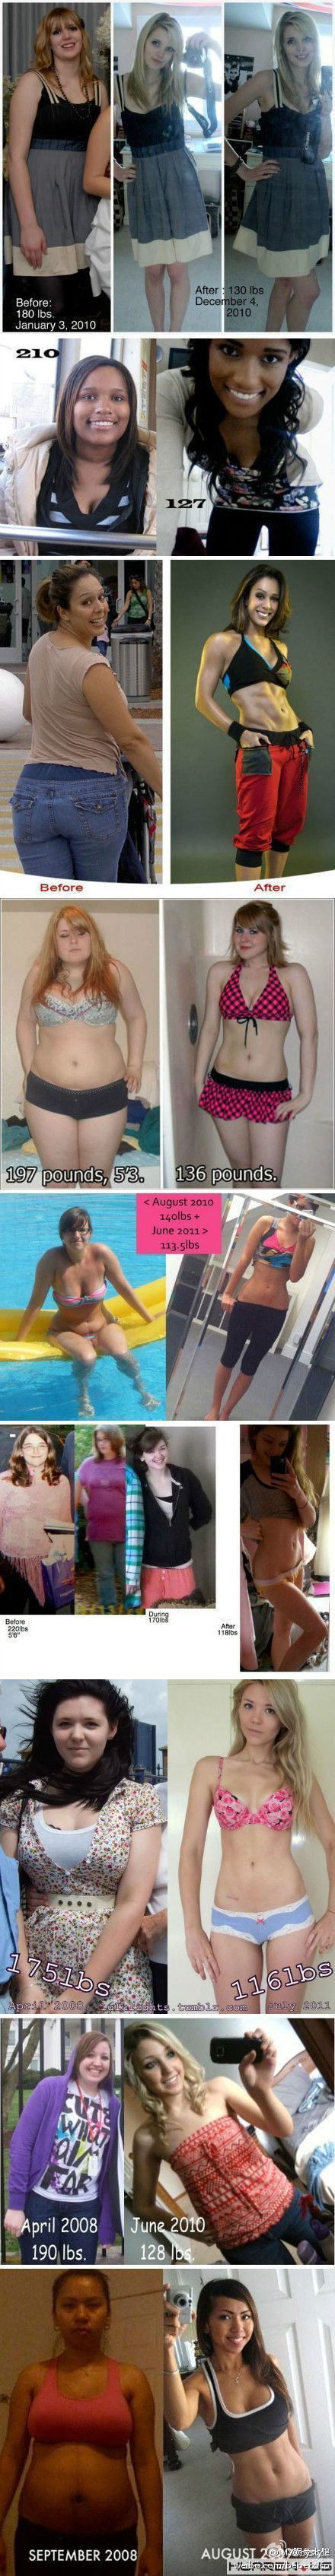 Losing Weight inspiration!